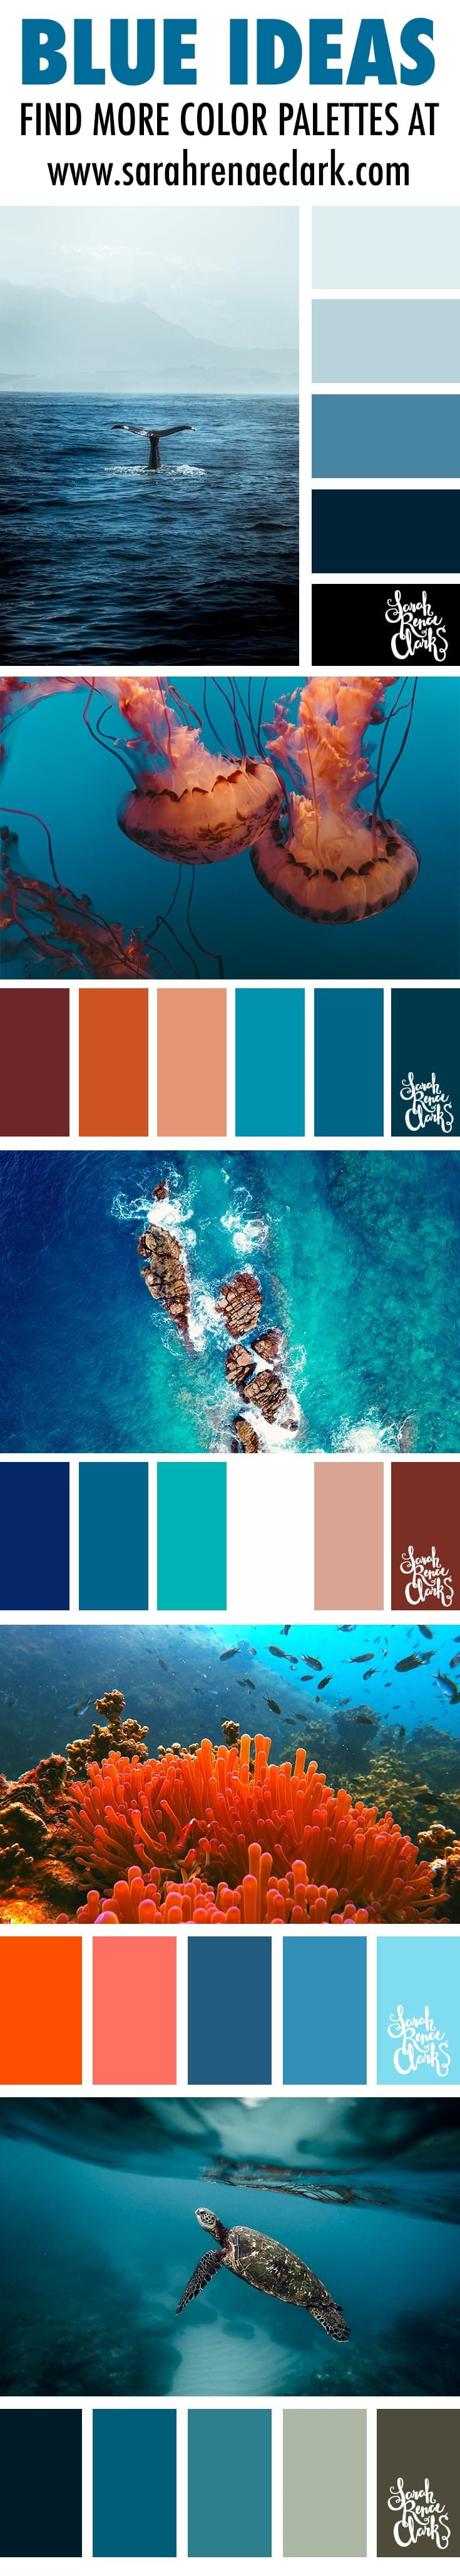 blue color palettes, color schemes